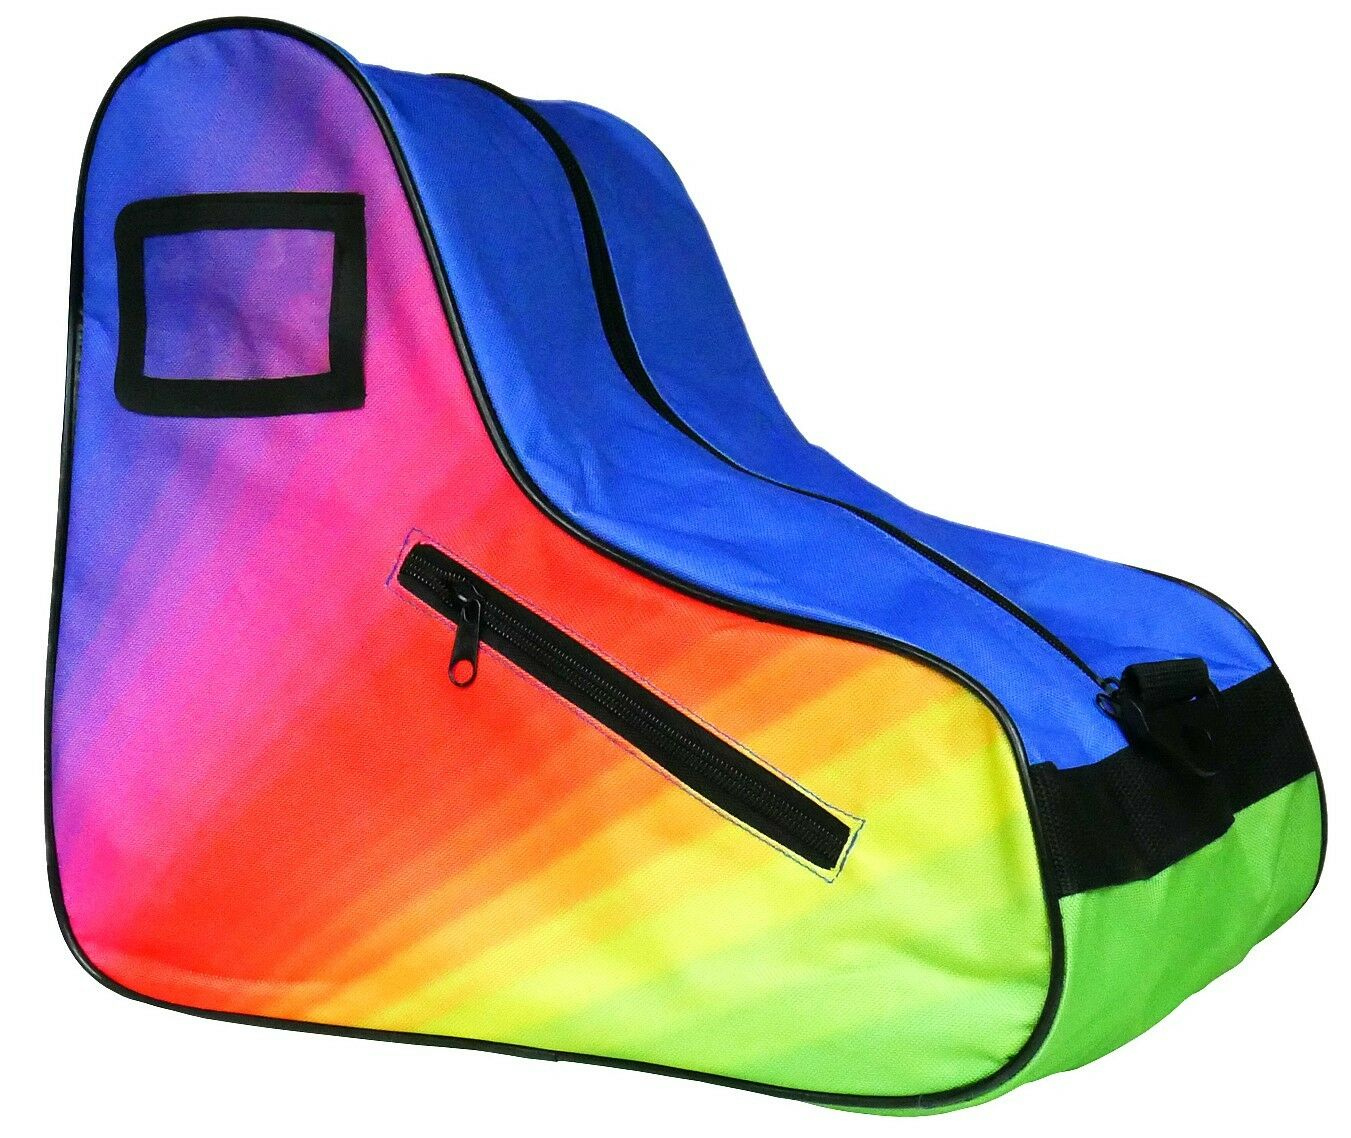 new epic limited edition rainbow spectrum quad